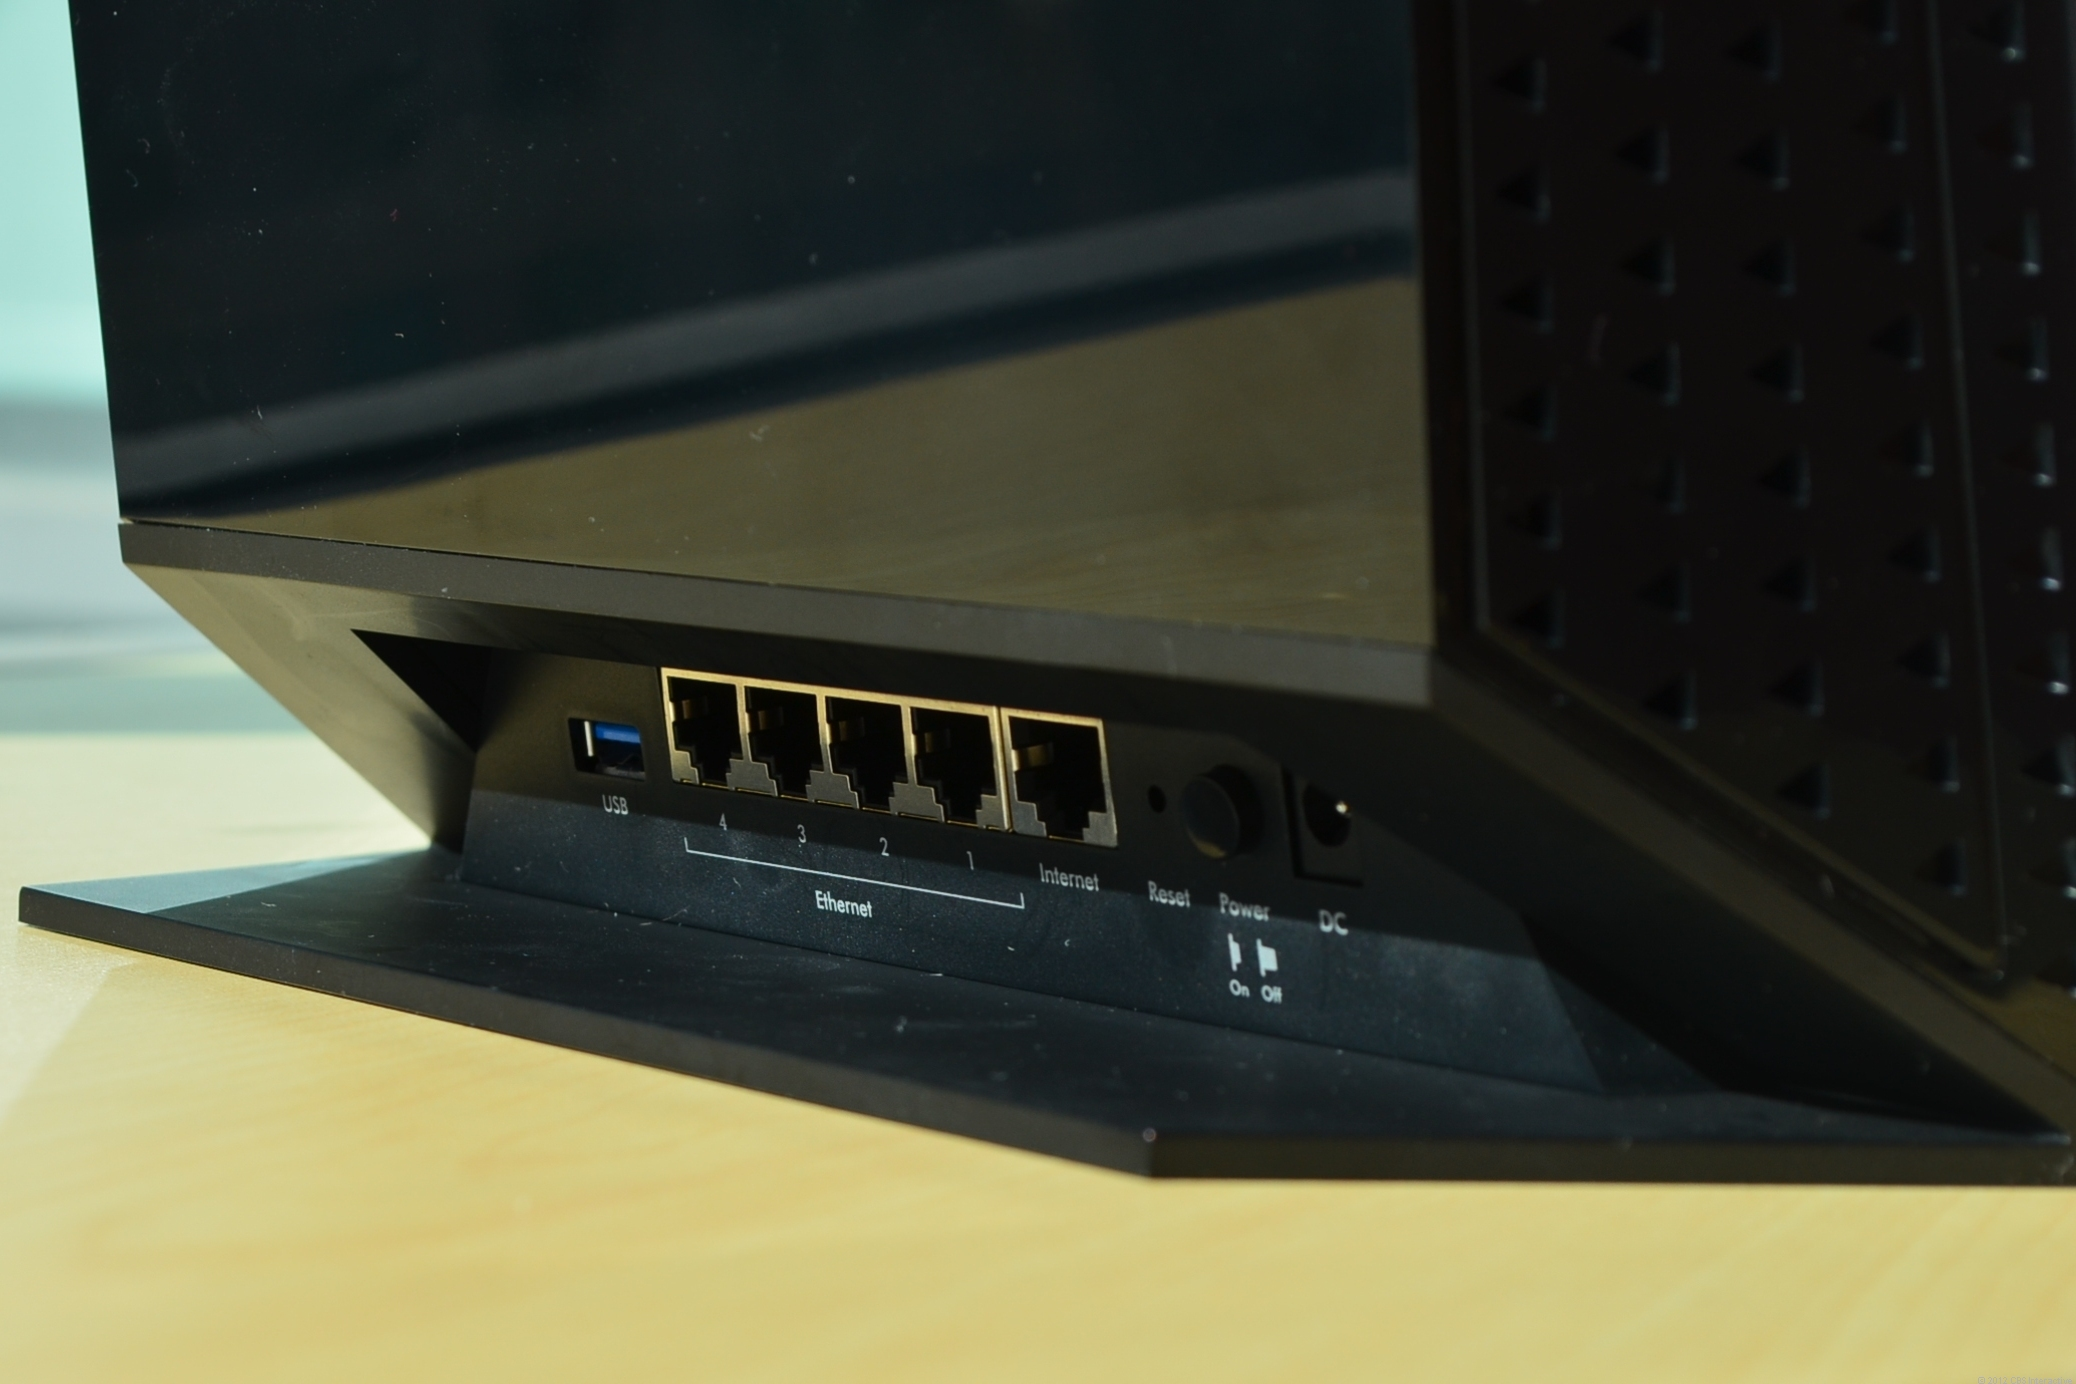 The base and the bulky part of the drive bay make it hard to reach the router's ports on the back.